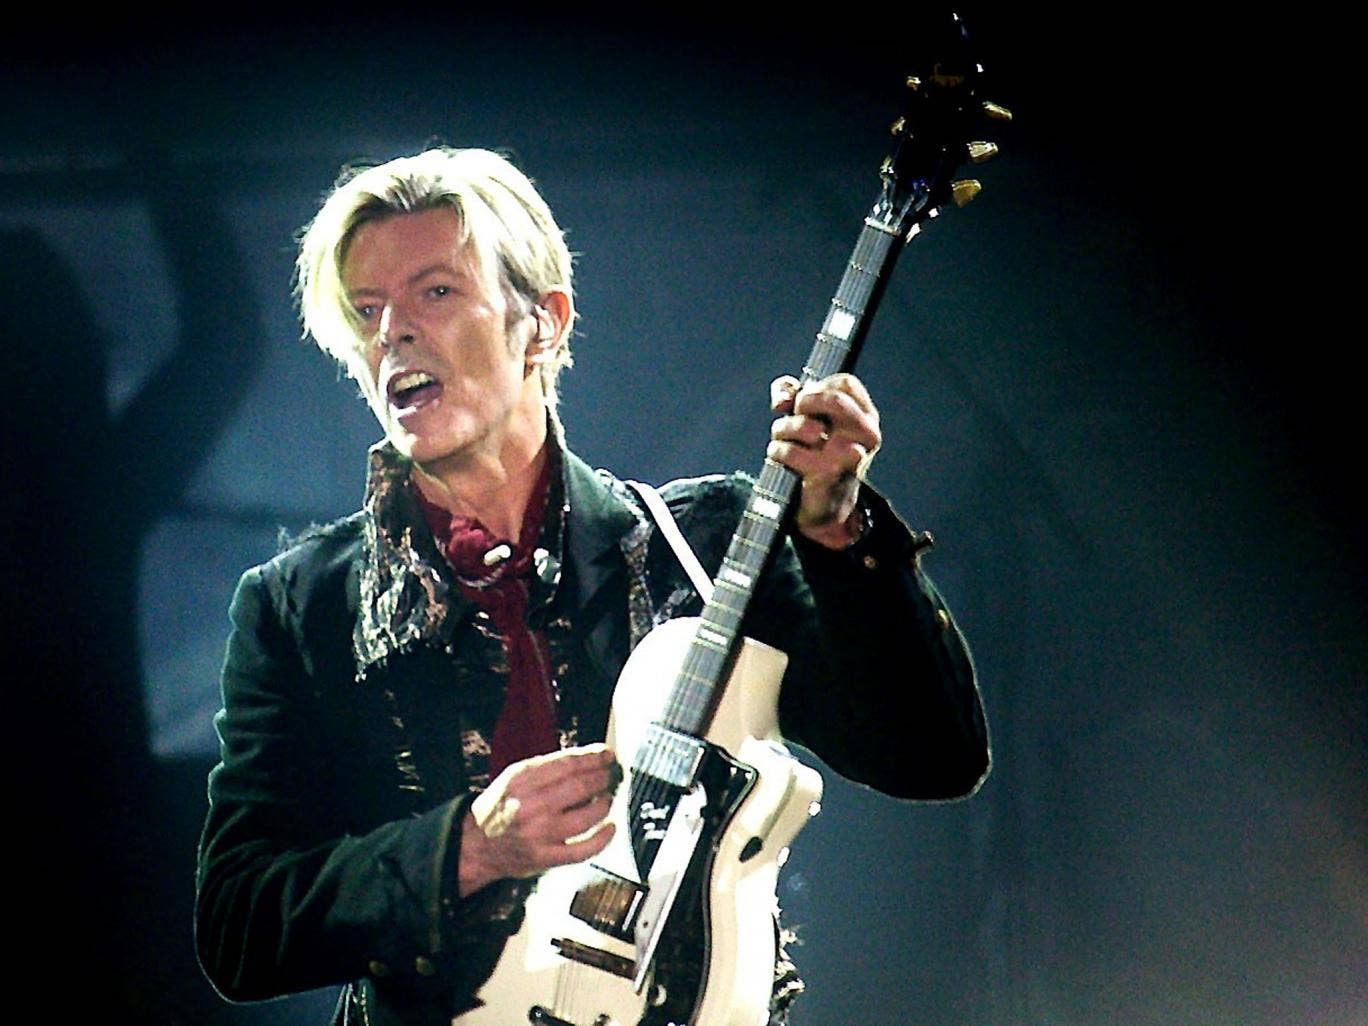 Janet Street-Porter on Bowie: 'A massive exhibition about him opens at the V&A next month – a brilliant opportunity to sell product, when everyone thought you'd retire'